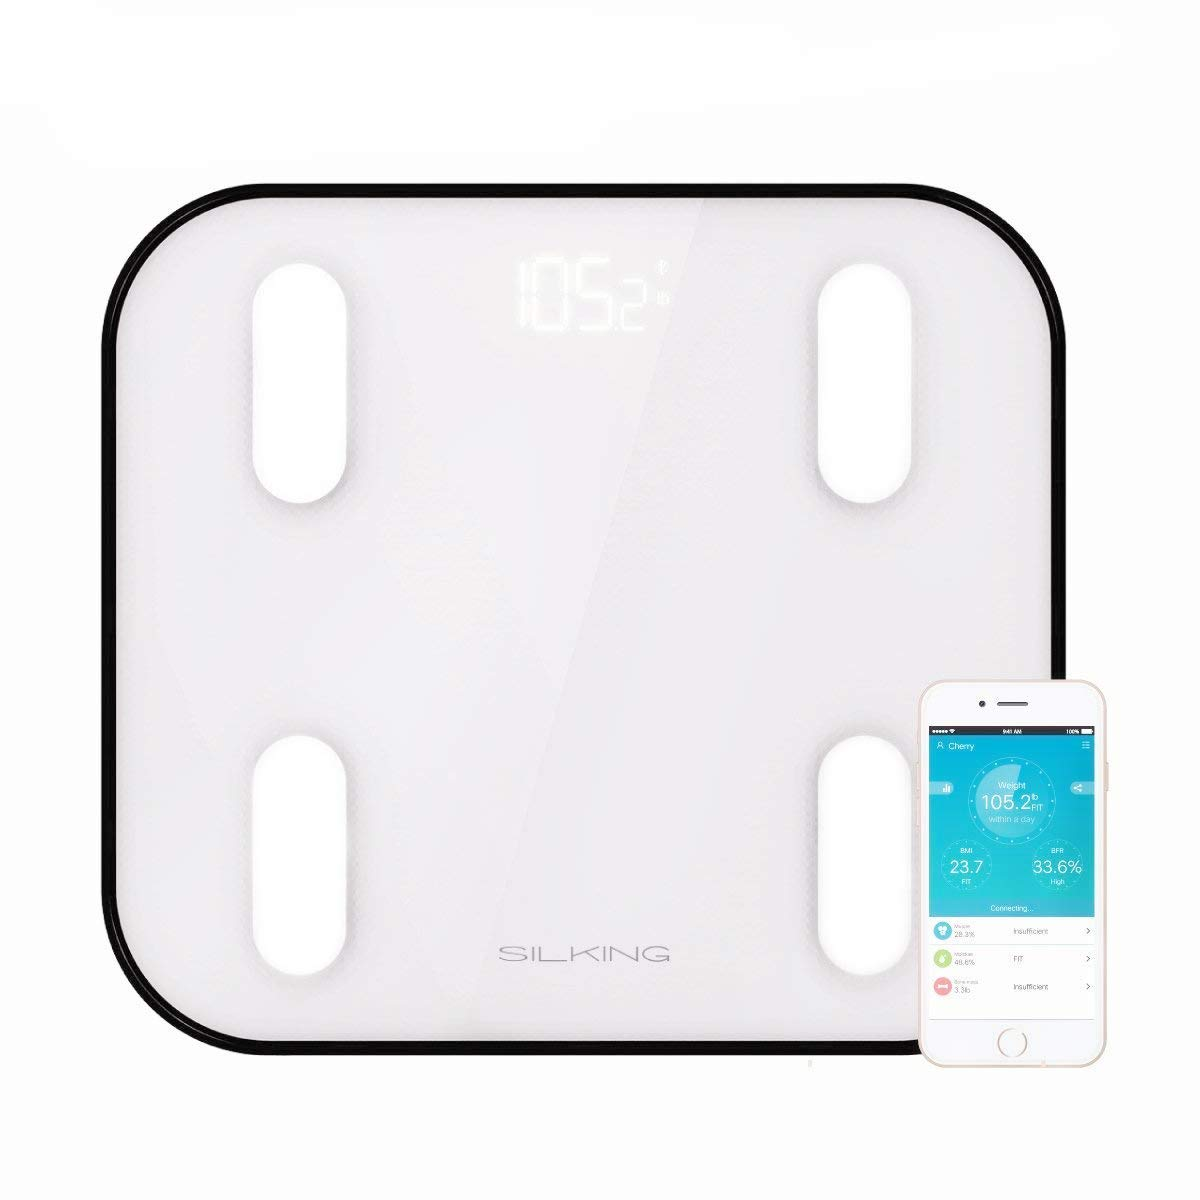 SILKING Digital Body Weight Bluetooth Fat Scale BMI Bathroom Glass with iOS & Android Free APP Monitor Accurate Body Composition Muscle Mass, BMR, Analyzer Calculator Up to 400lbs Backlight Display